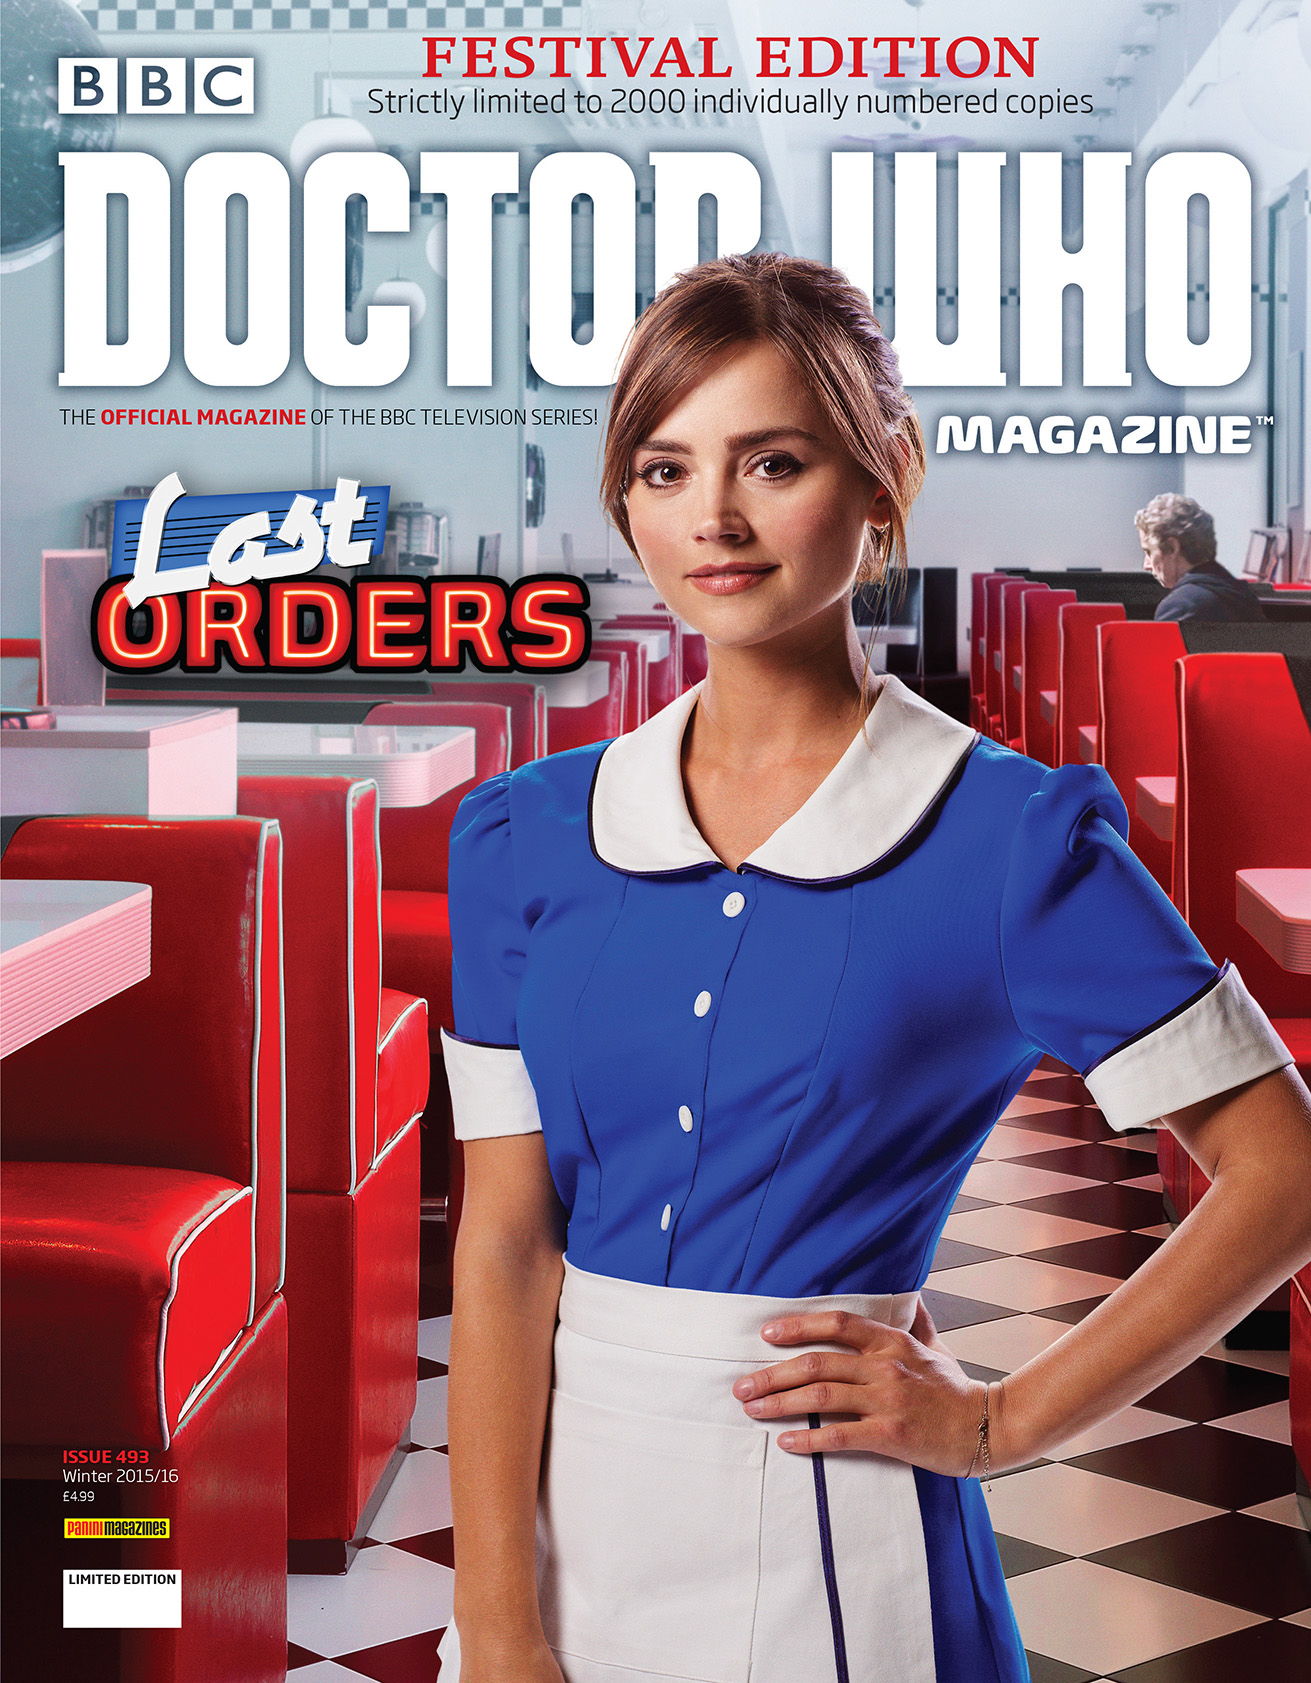 Doctor Who Magazine 492 (Festival edition) (Credit: Doctor Who Magazine)